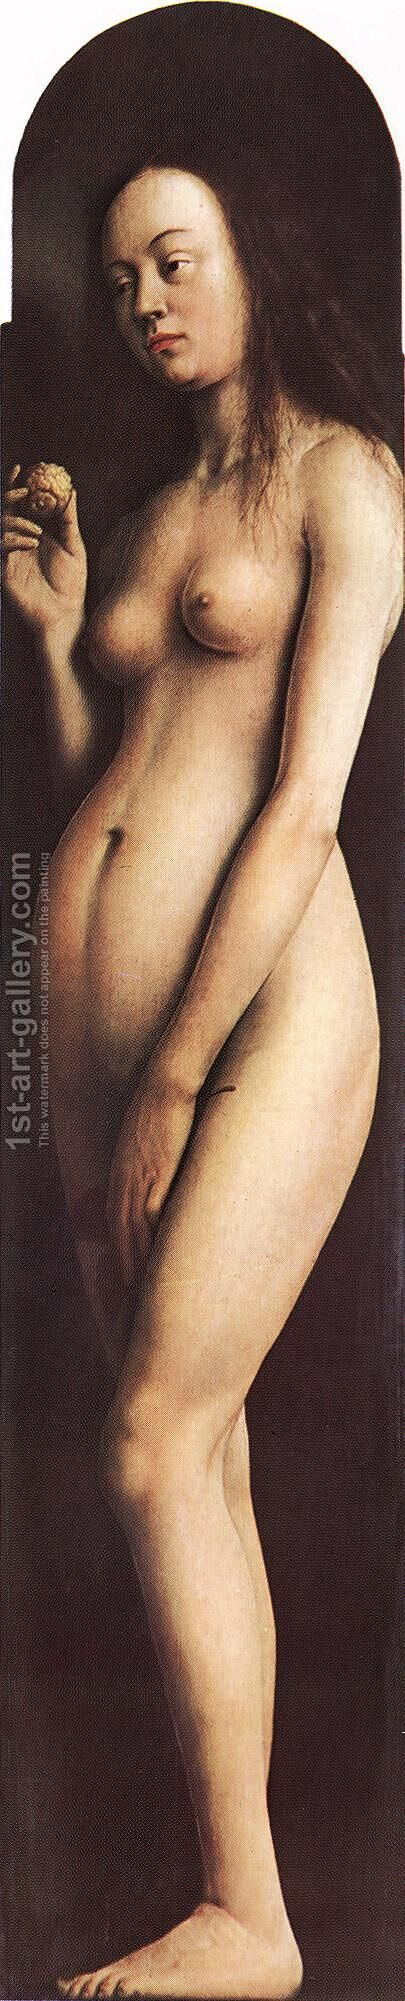 The Ghent Altarpiece- Eve 1425-29 by Jan Van Eyck - Reproduction Oil Painting